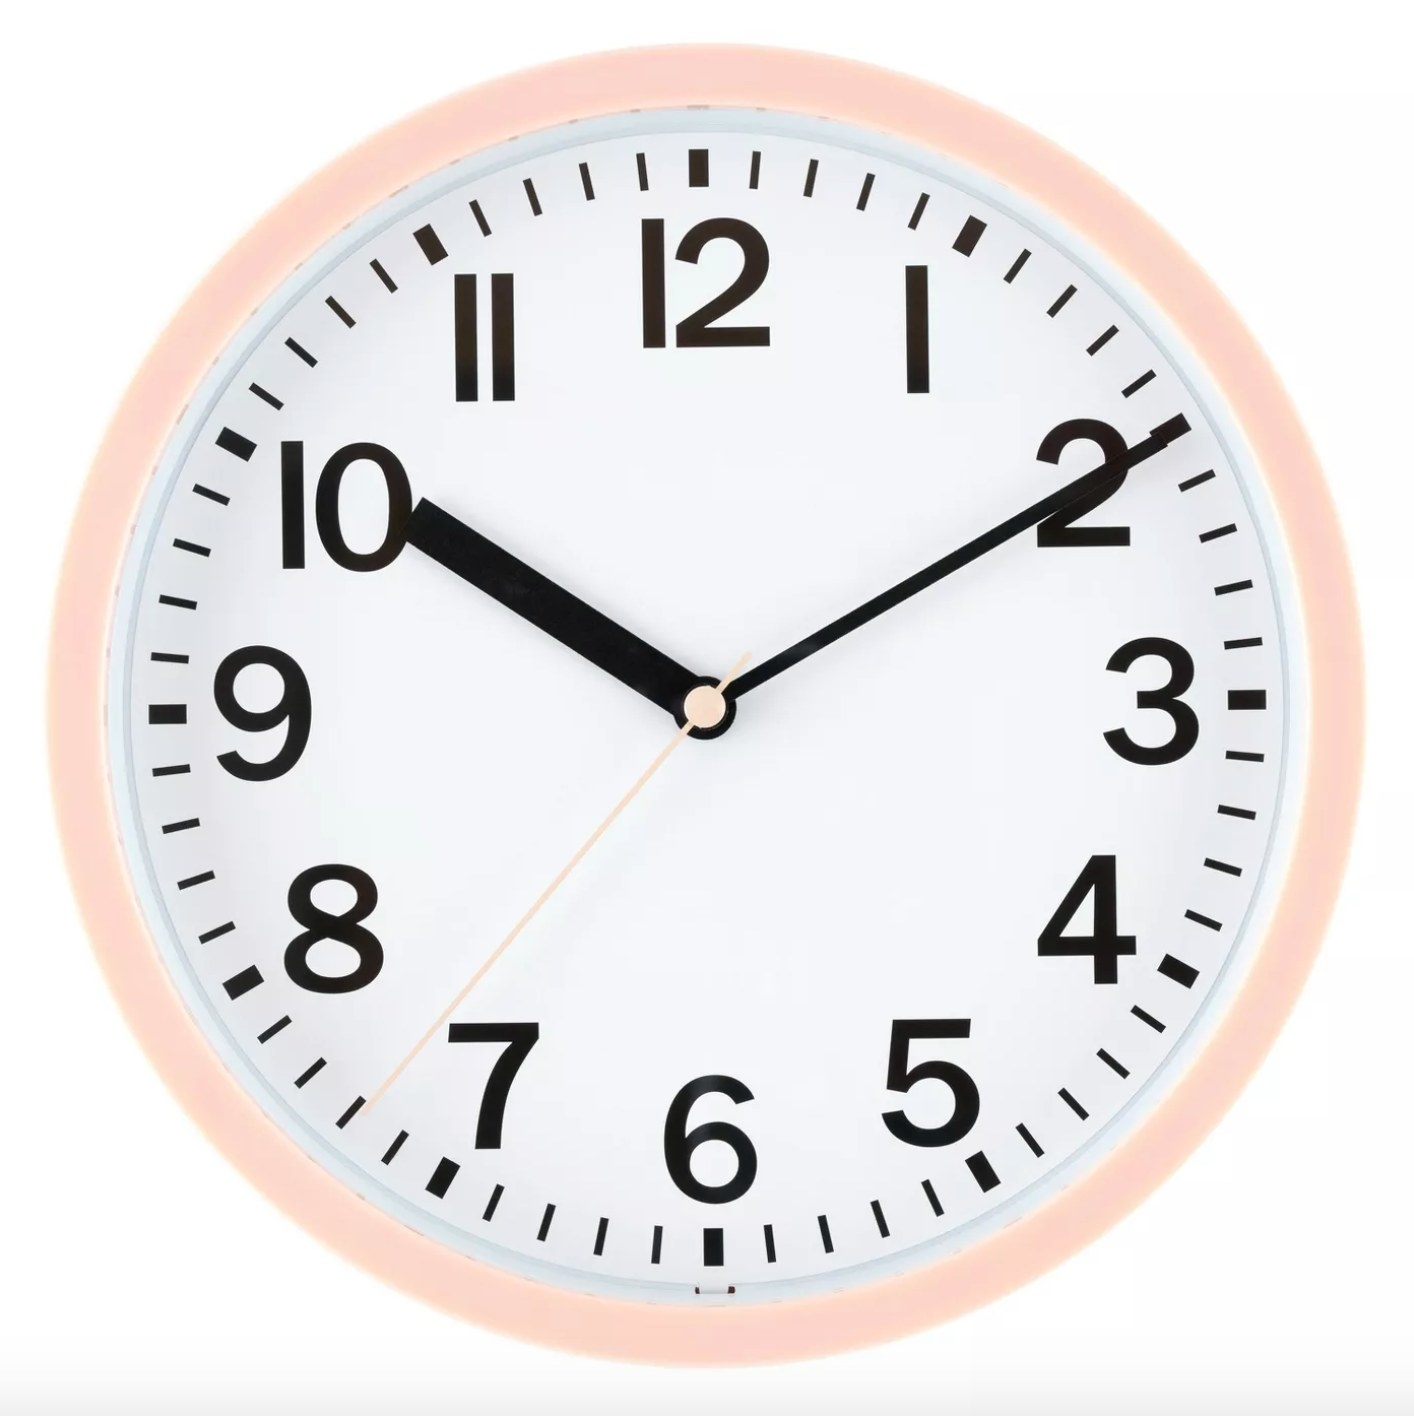 The round wall clock in blush